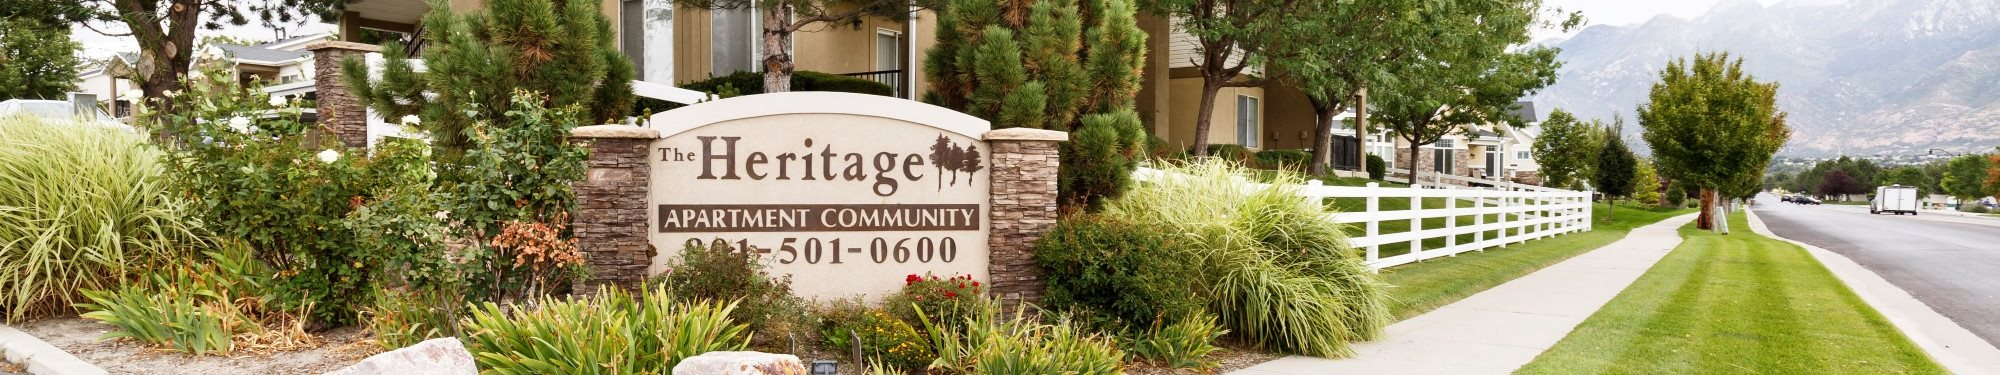 The Heritage Apartment Community Exterior Monument Sign